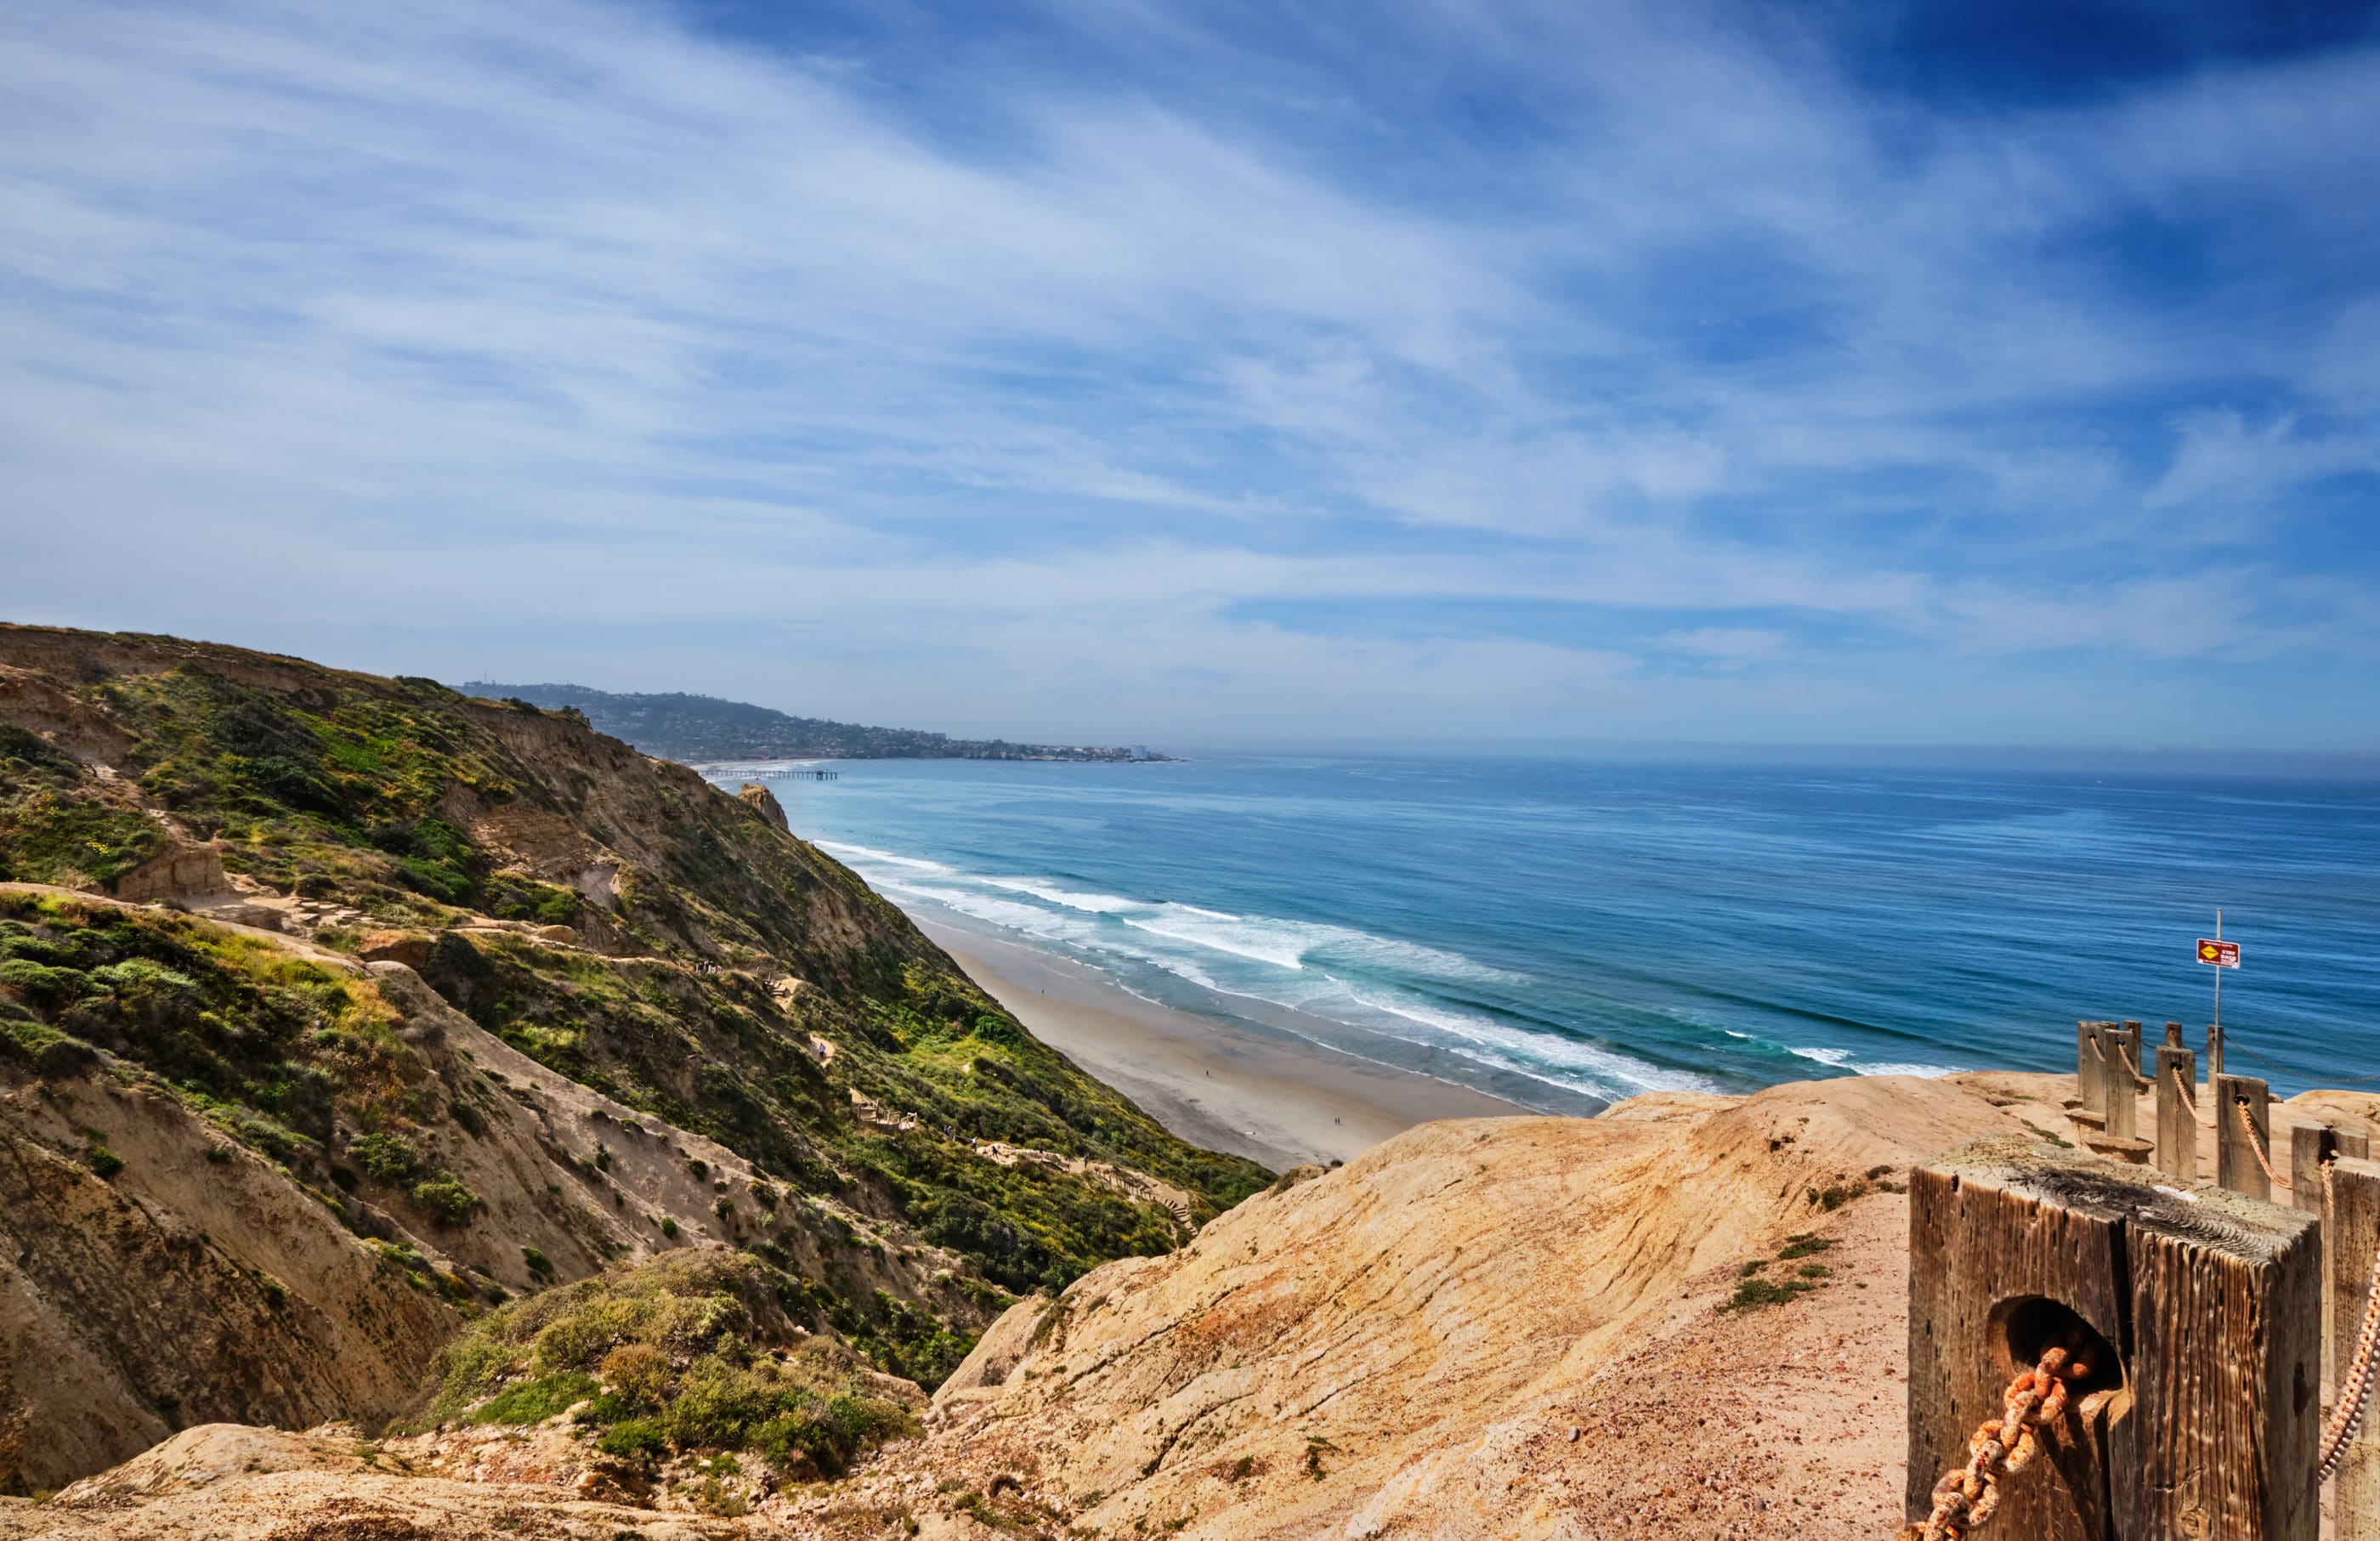 View from the cliffs down to Black's Beach in La Jolla.